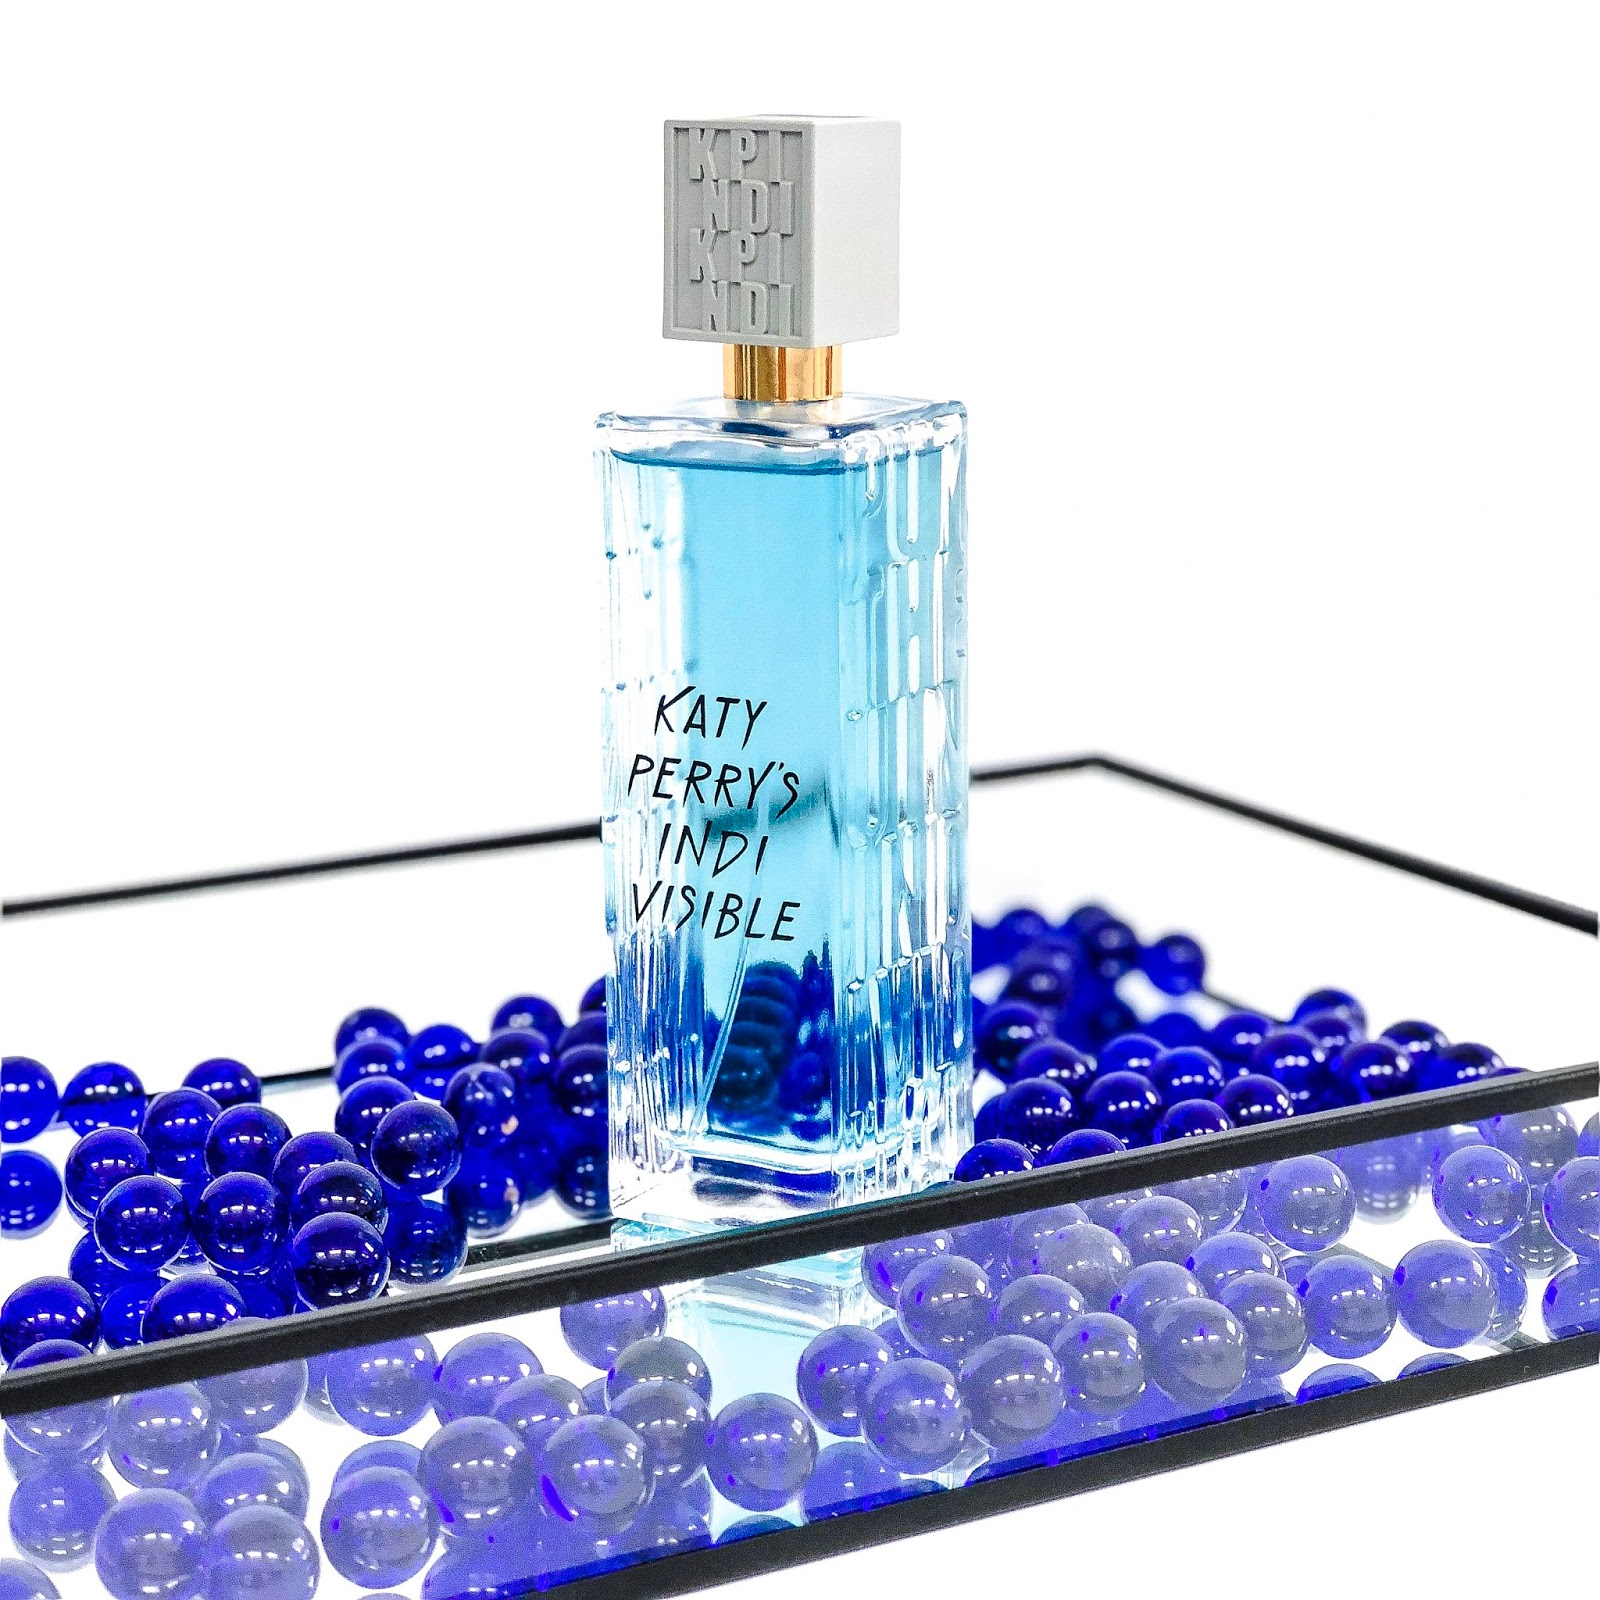 Product Review Katy Perry Indi Visible Edp The Beauty Lifestyle